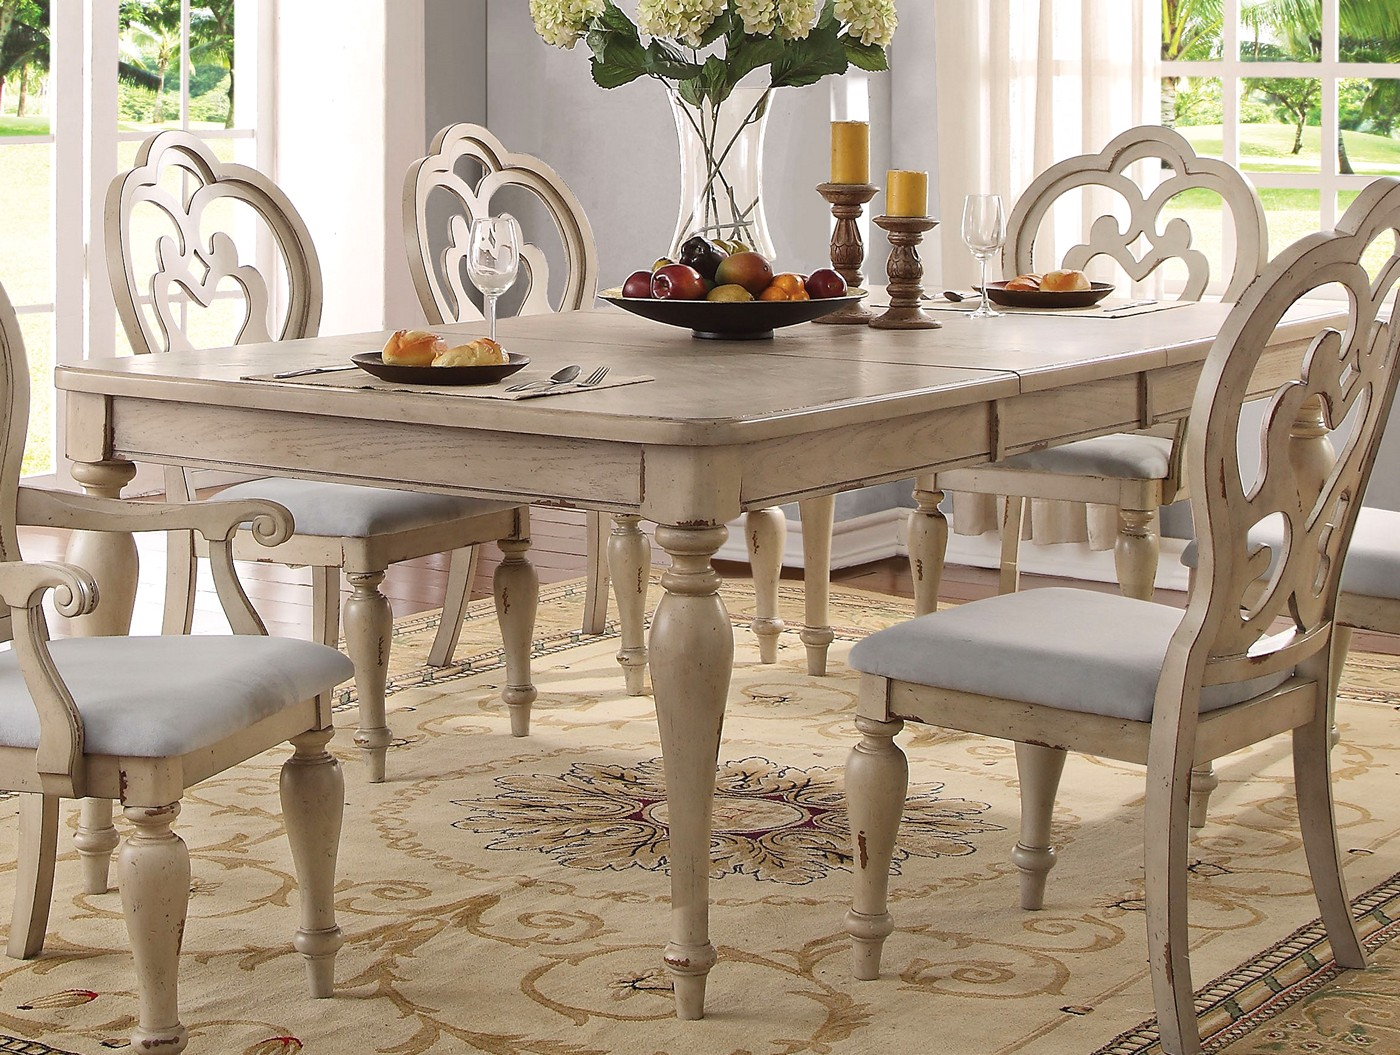 french country dining table set white wood dining room table. Black Bedroom Furniture Sets. Home Design Ideas